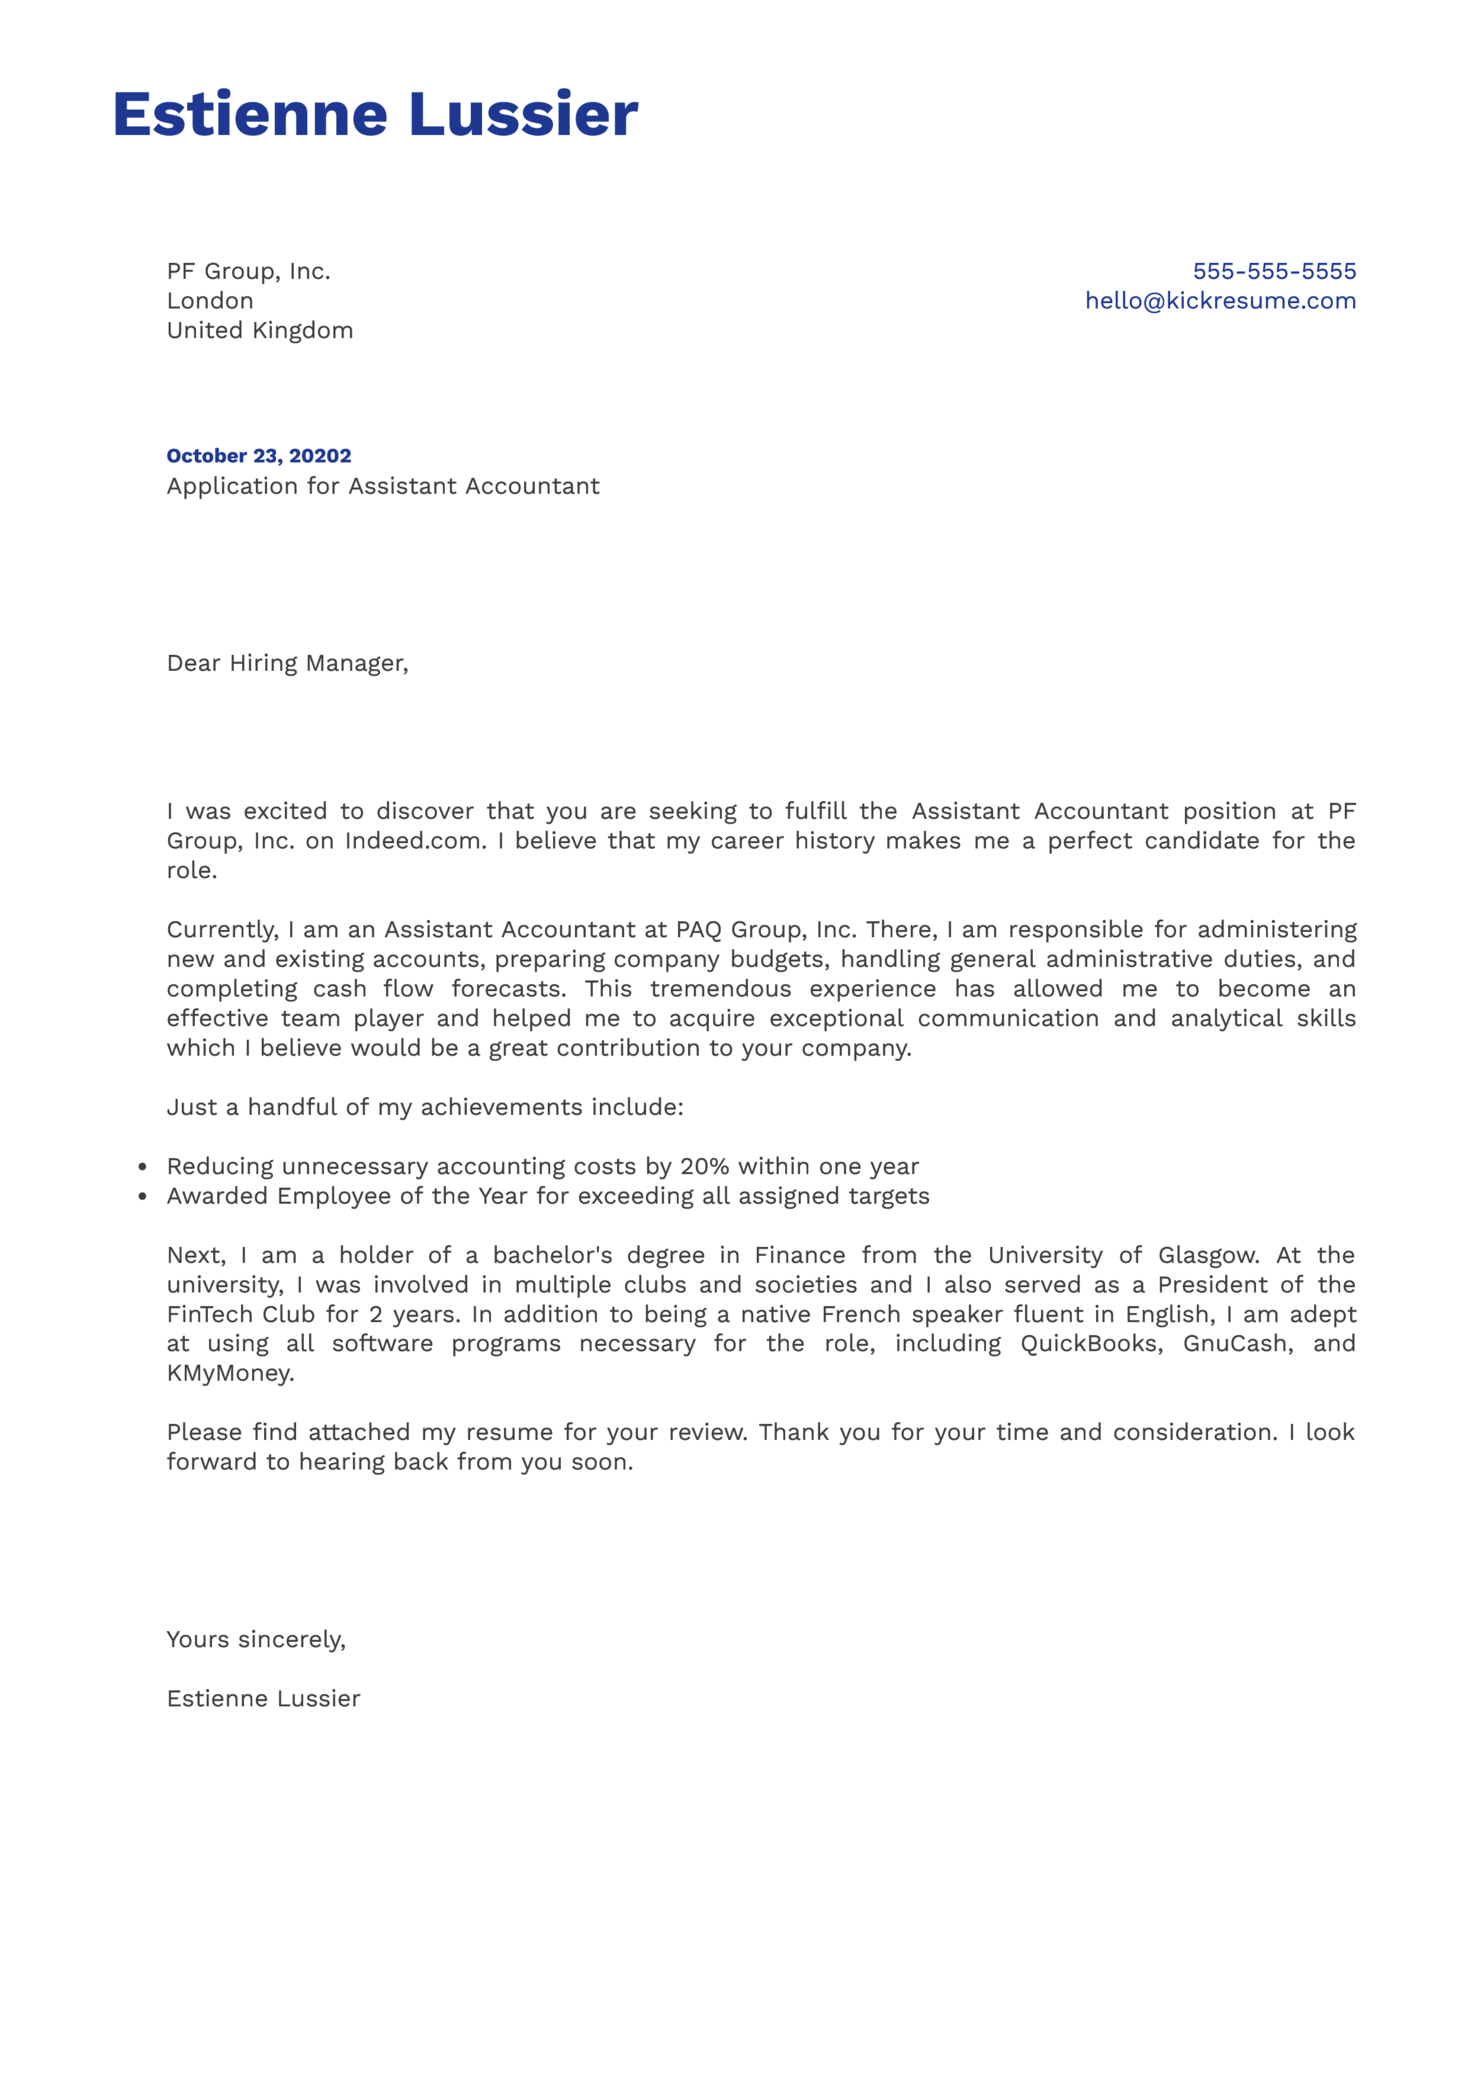 Assistant Accountant Cover Letter Example